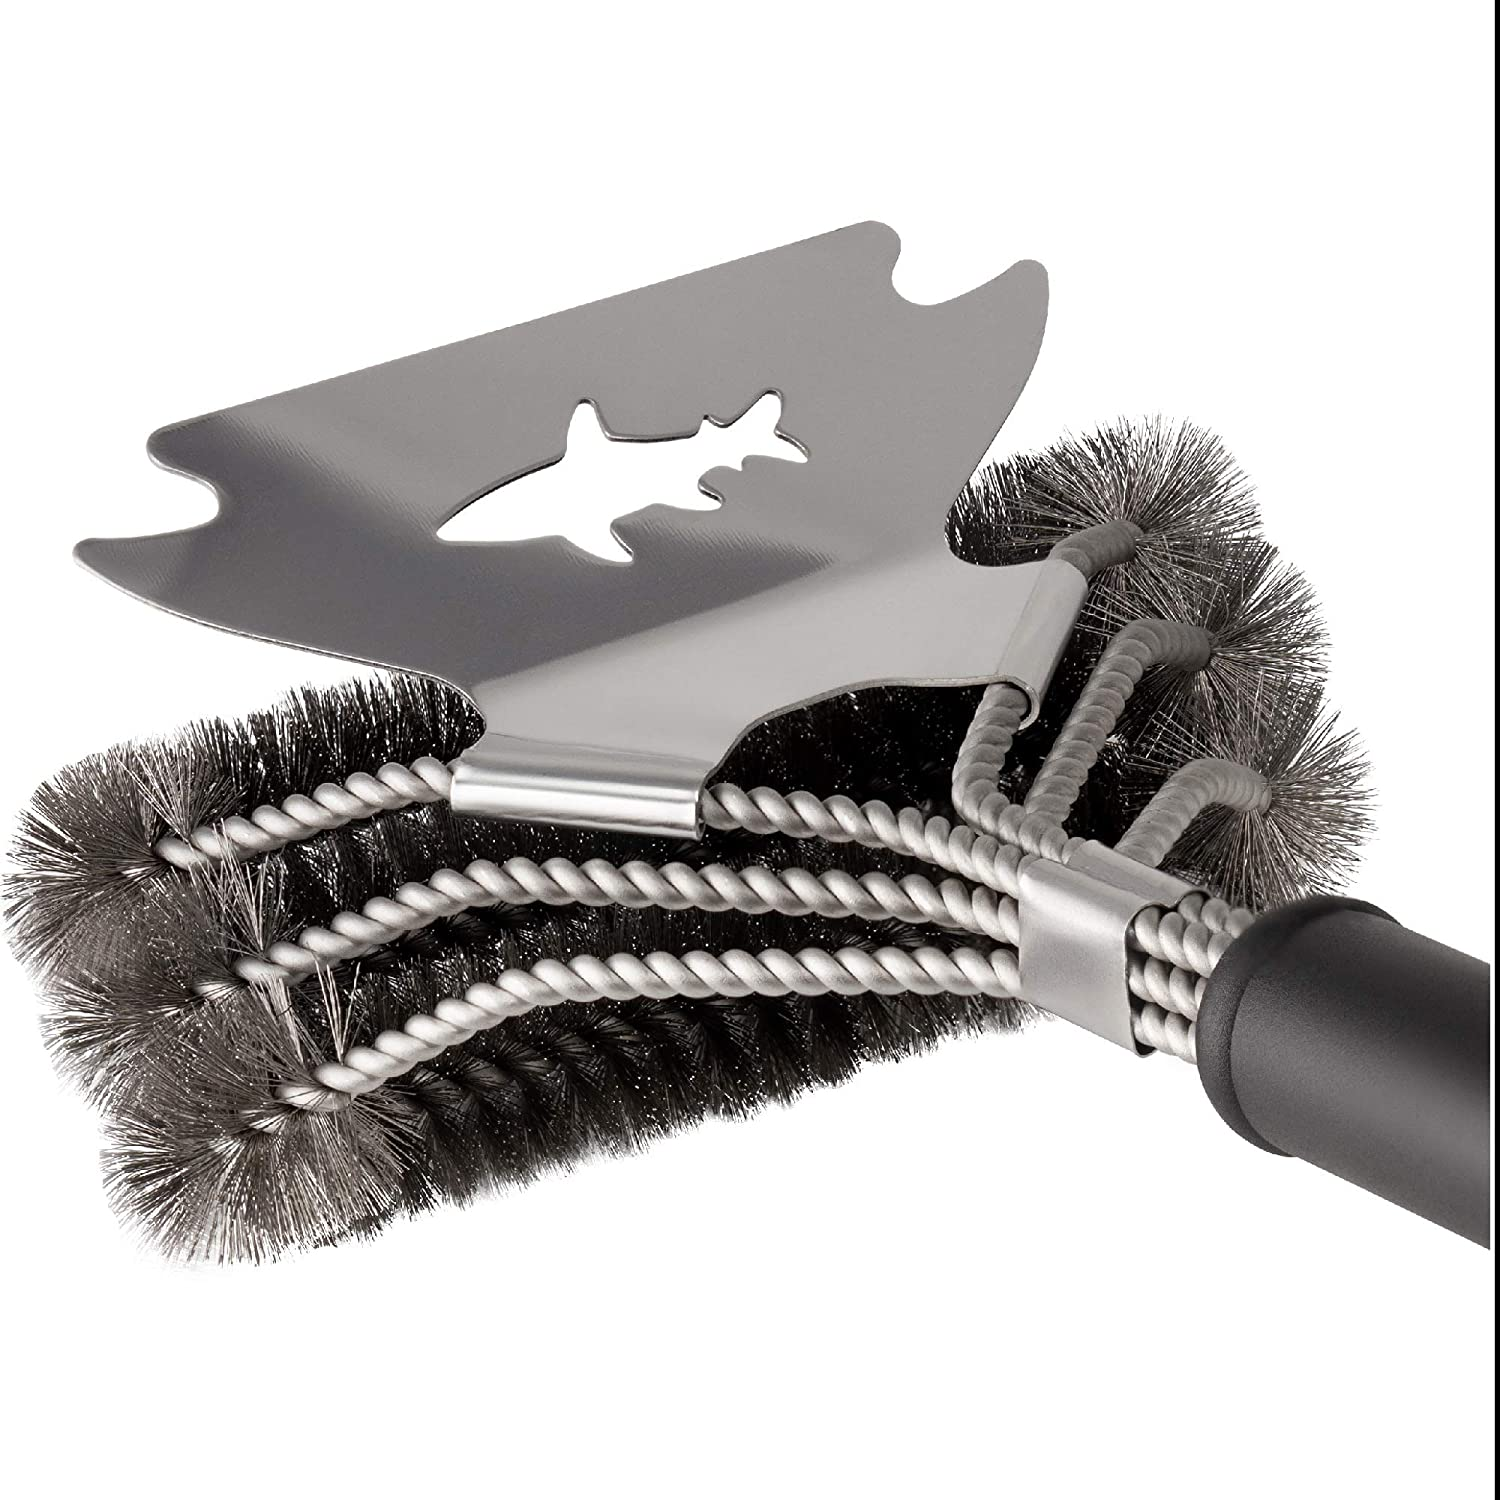 BBQ Tools Grill Cleaner Loose Paint Wire Brush Attachment Alternative Graffiti Removal Stone Oven Rack Cleaner Rust Removal Concrete Grill Scraper BBQ Grill Accessories Grill Brush